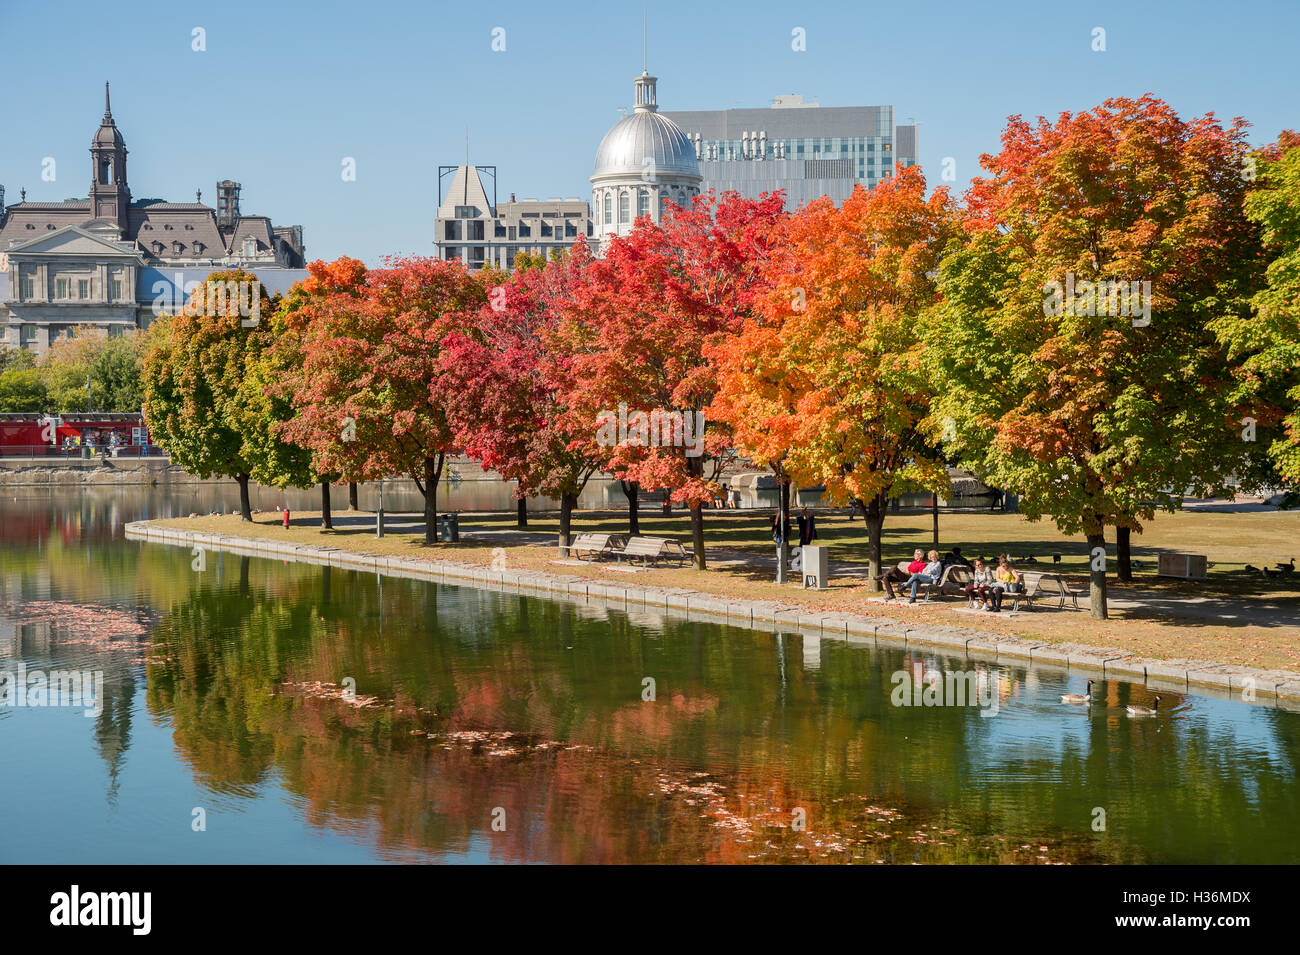 Montreal Ca 4 October 2016 Maple Trees In Autumn Colors